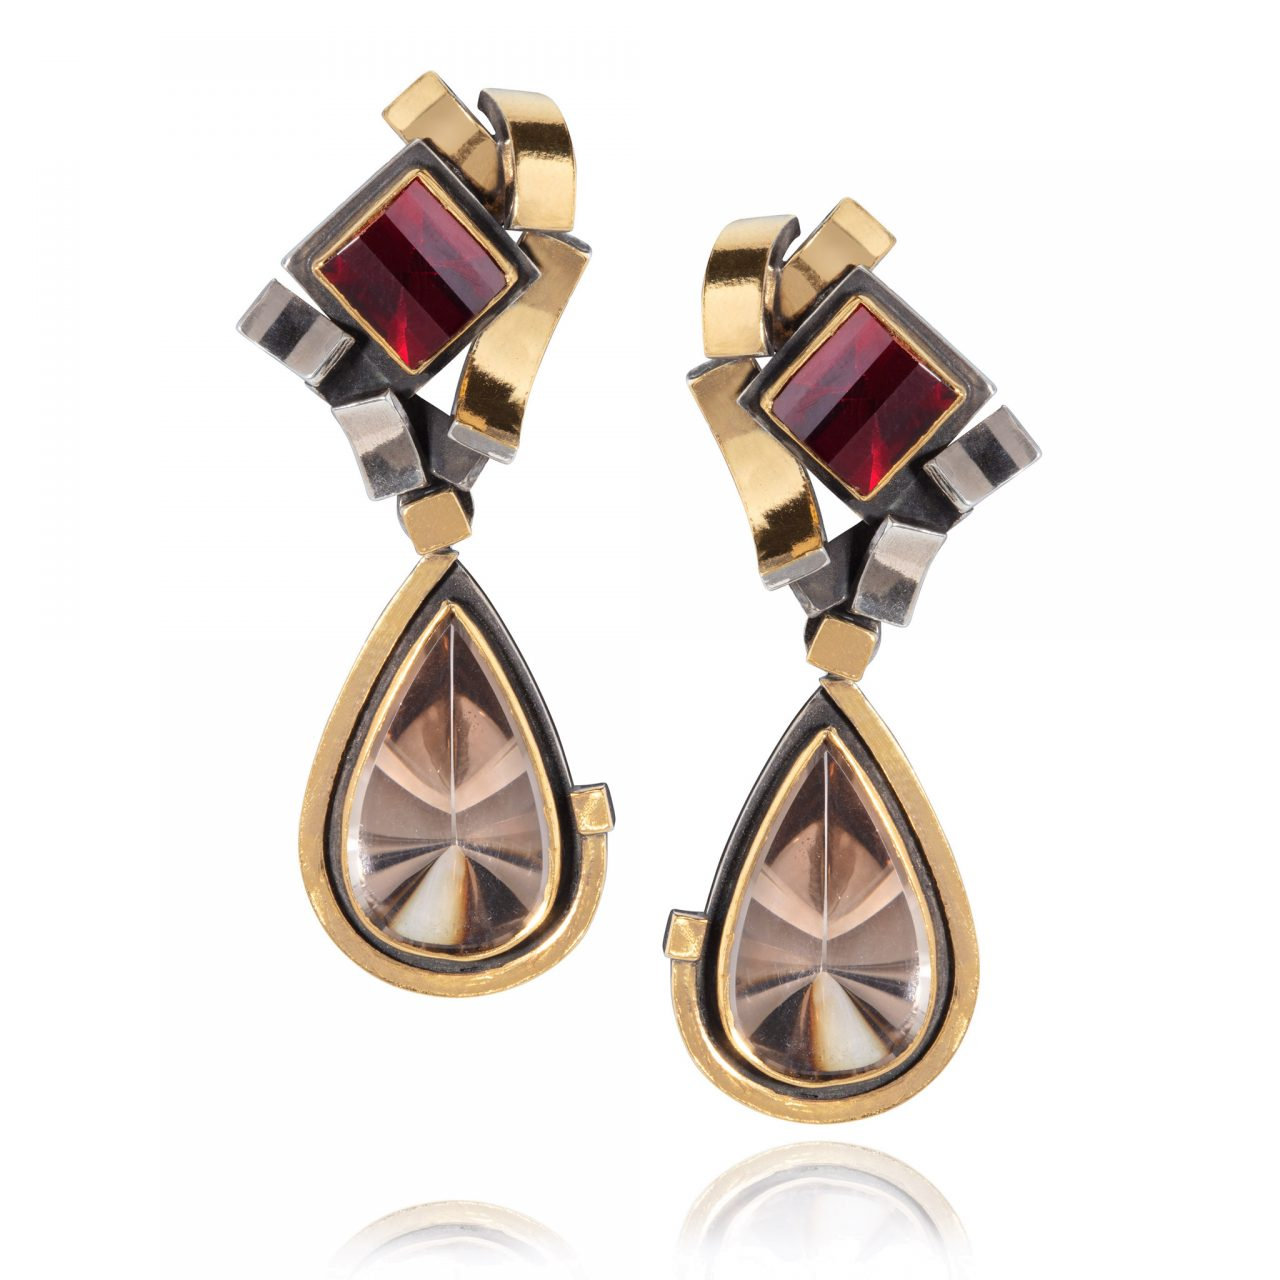 Smoky Quartz and Garnet Earrings